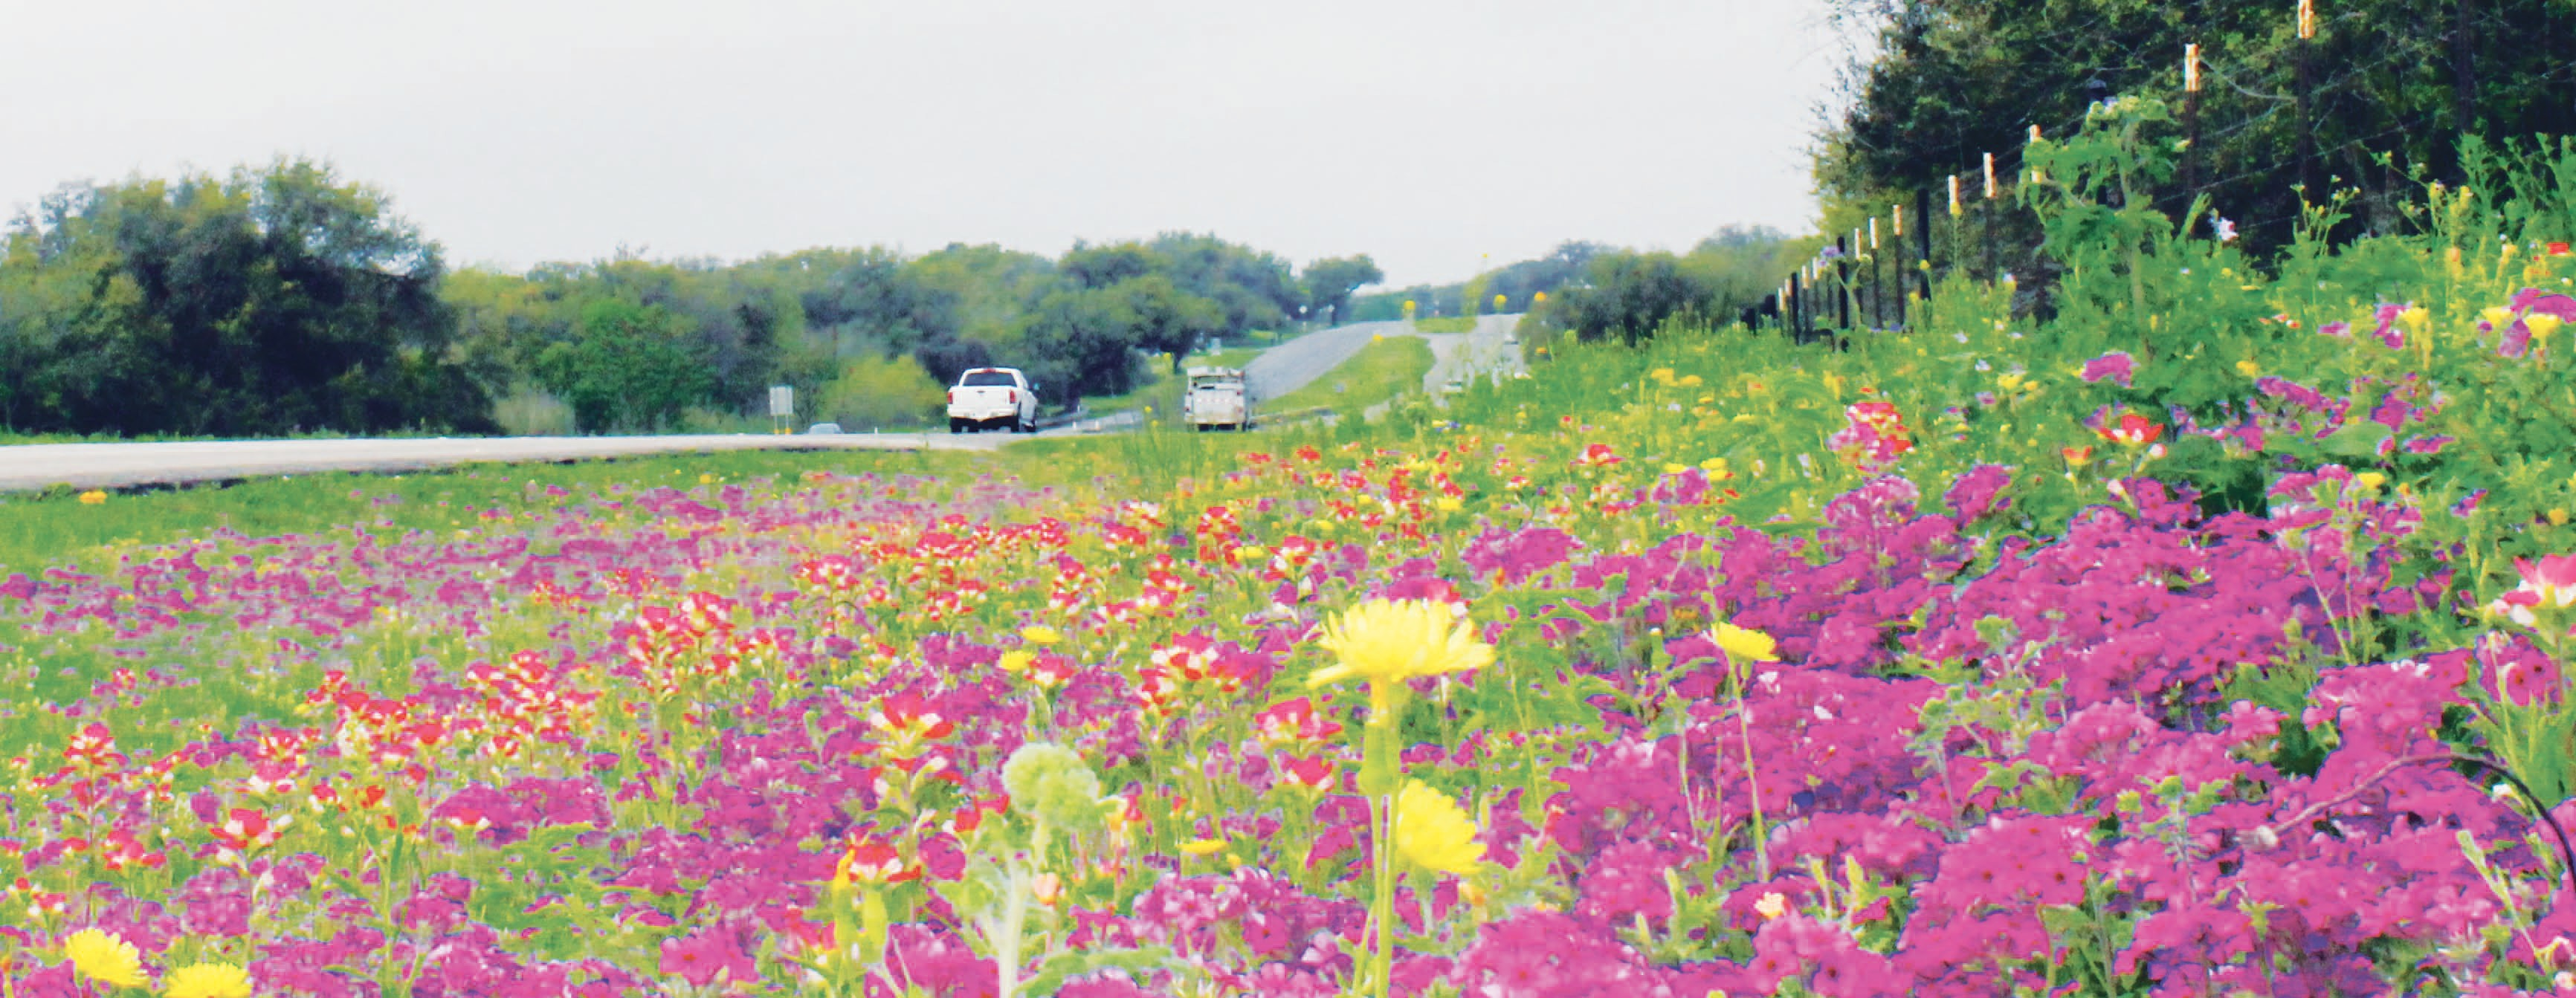 This assortment of wildflowers - phlox, Indian paintbrush and dandelions are plentiful this spring, which officially began on Tuesday, March 20. You can see these on Hwy. 97 E, outside of Pleasanton.